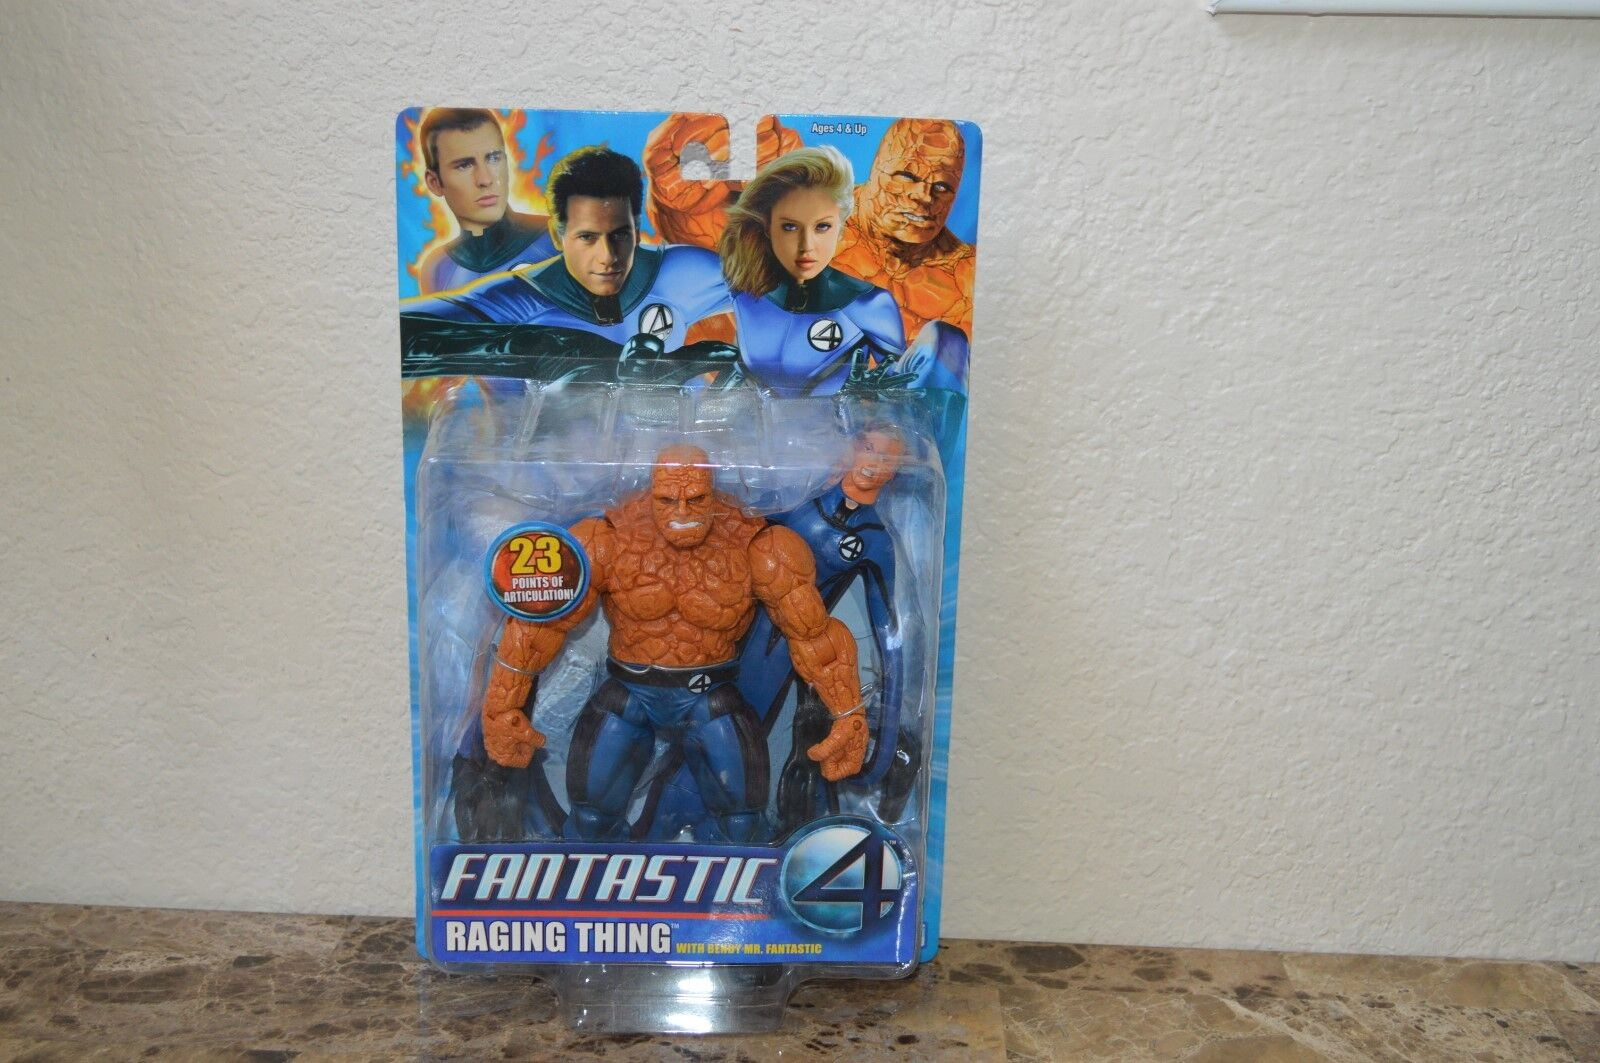 Marvel Legends Fantastic Four 4 Movie Raging Thing MOC Action Figure Toy Biz